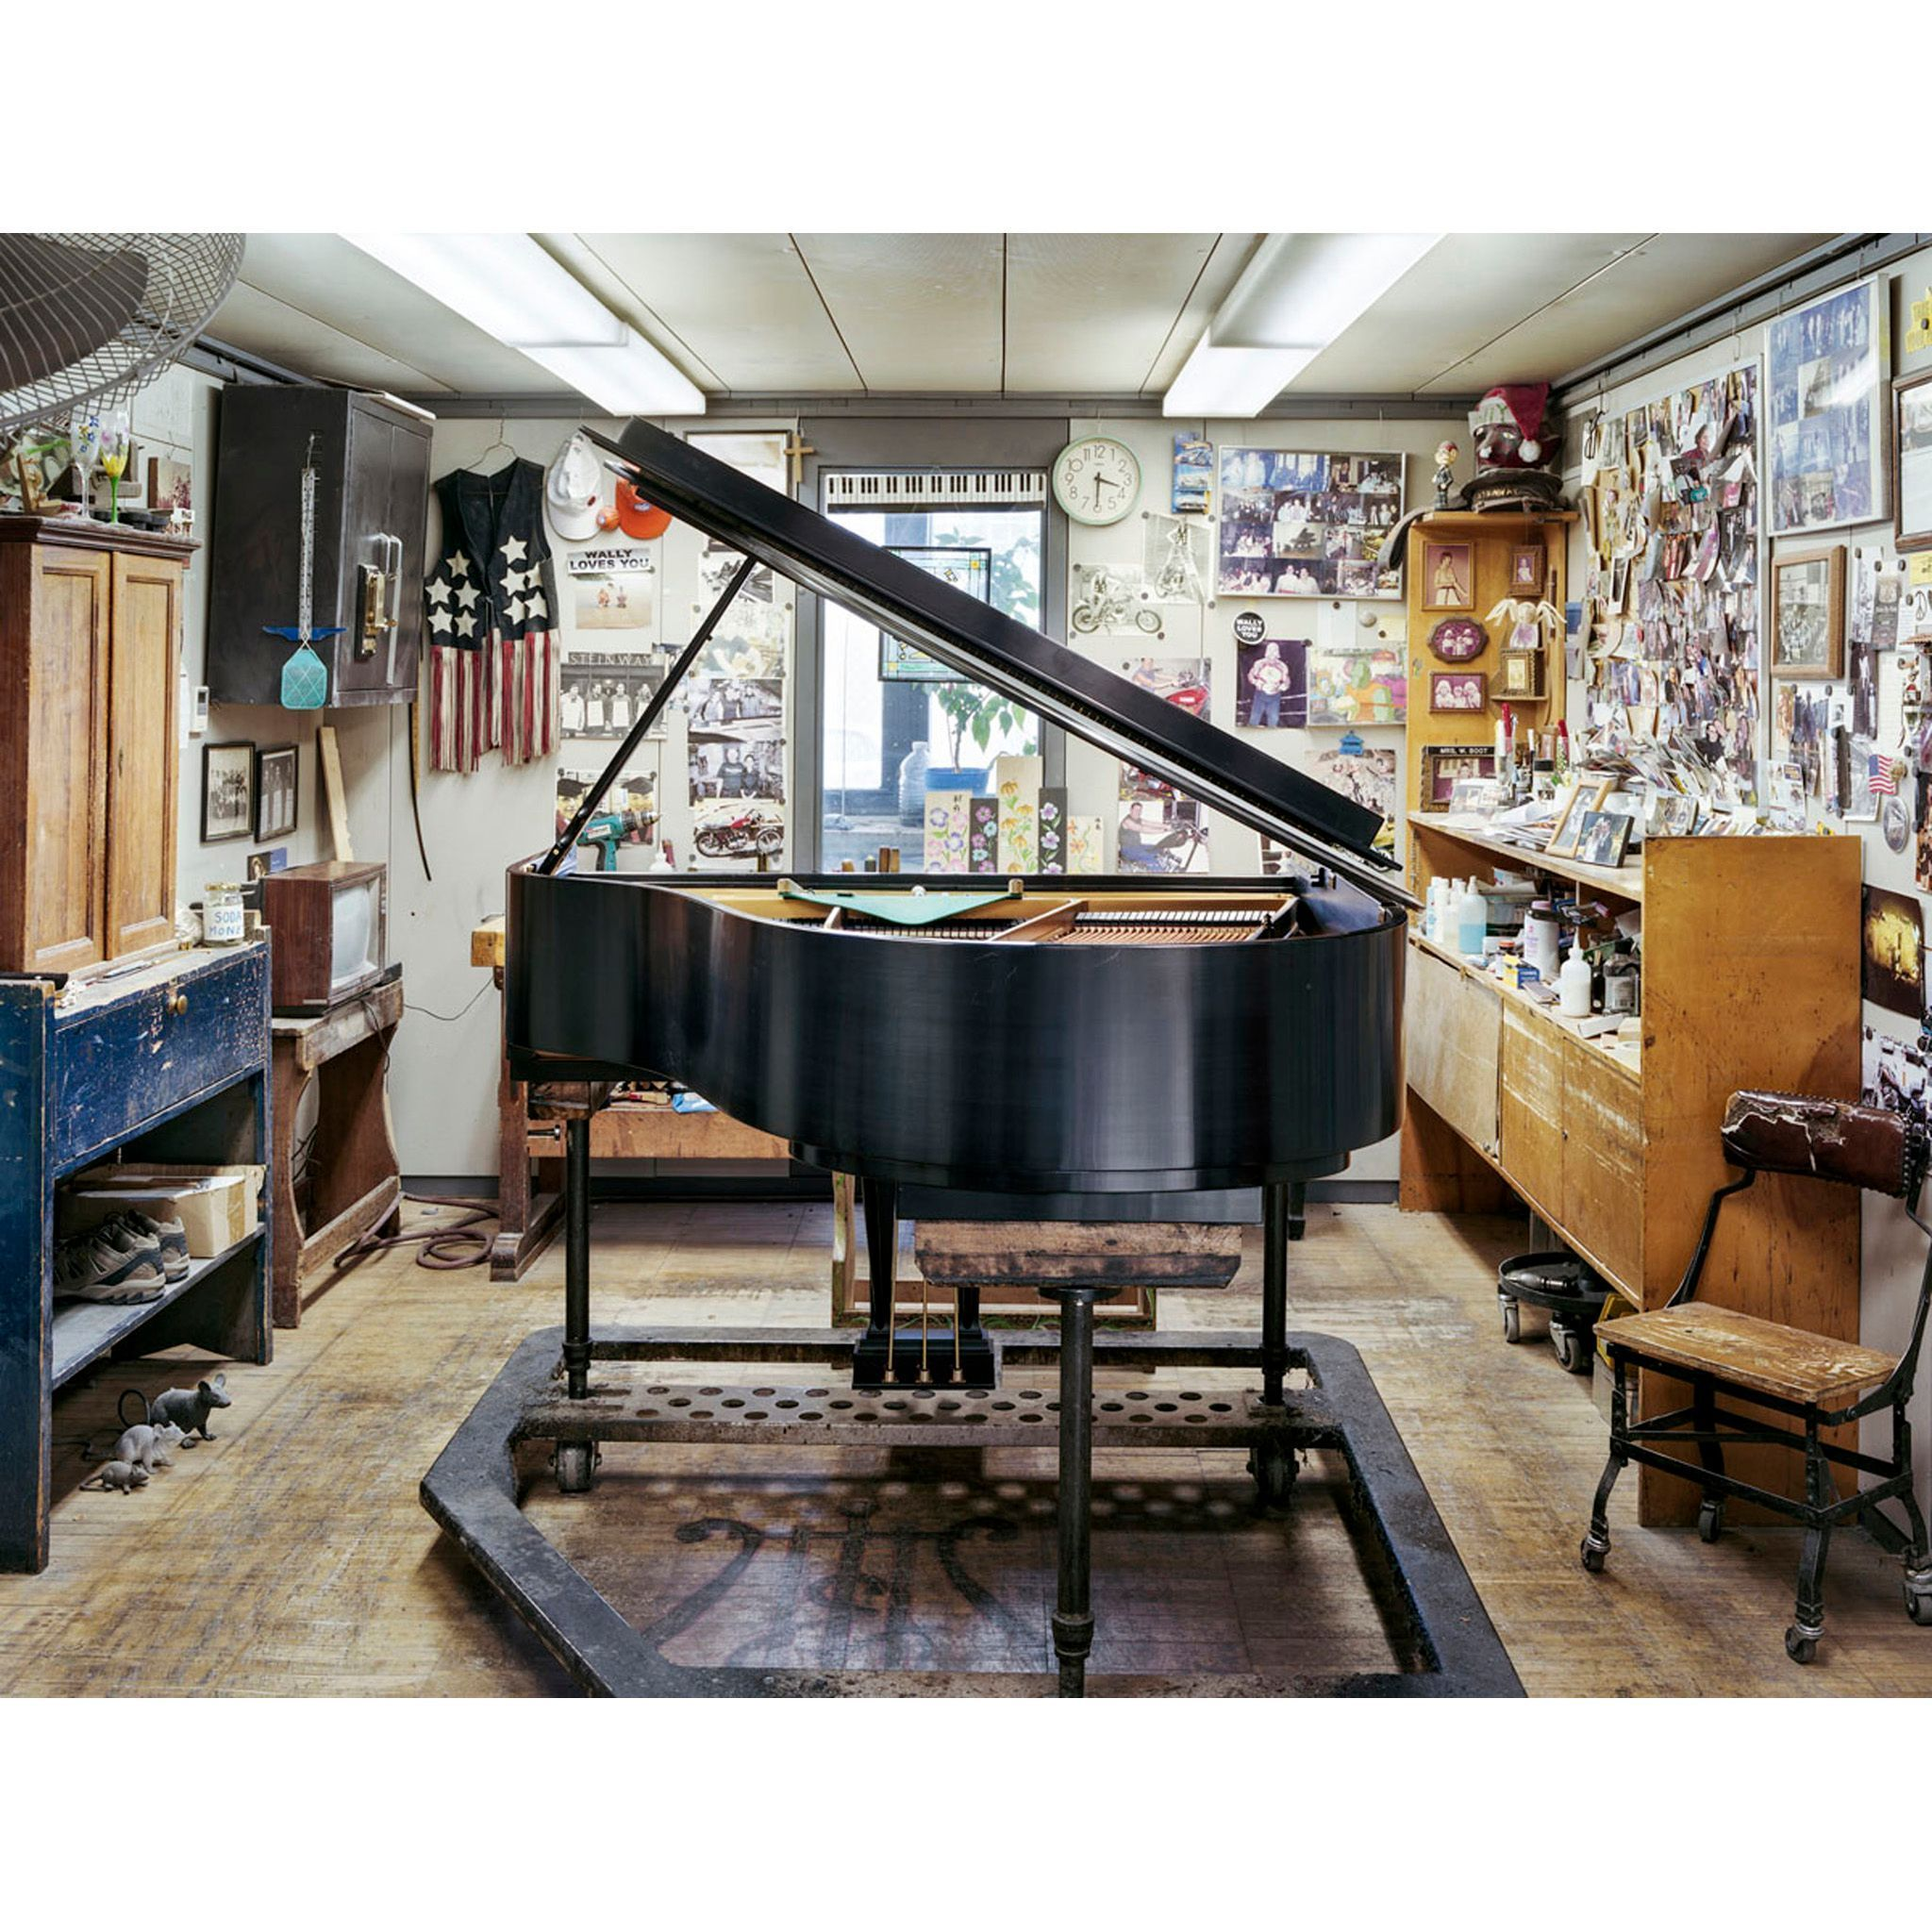 Christopher Payne S Photographs Of The Steinway Piano Factory In Astoria Ny Were Featured In Maize Magazine An Italian In 2020 Steinway Piano Architecture Photography